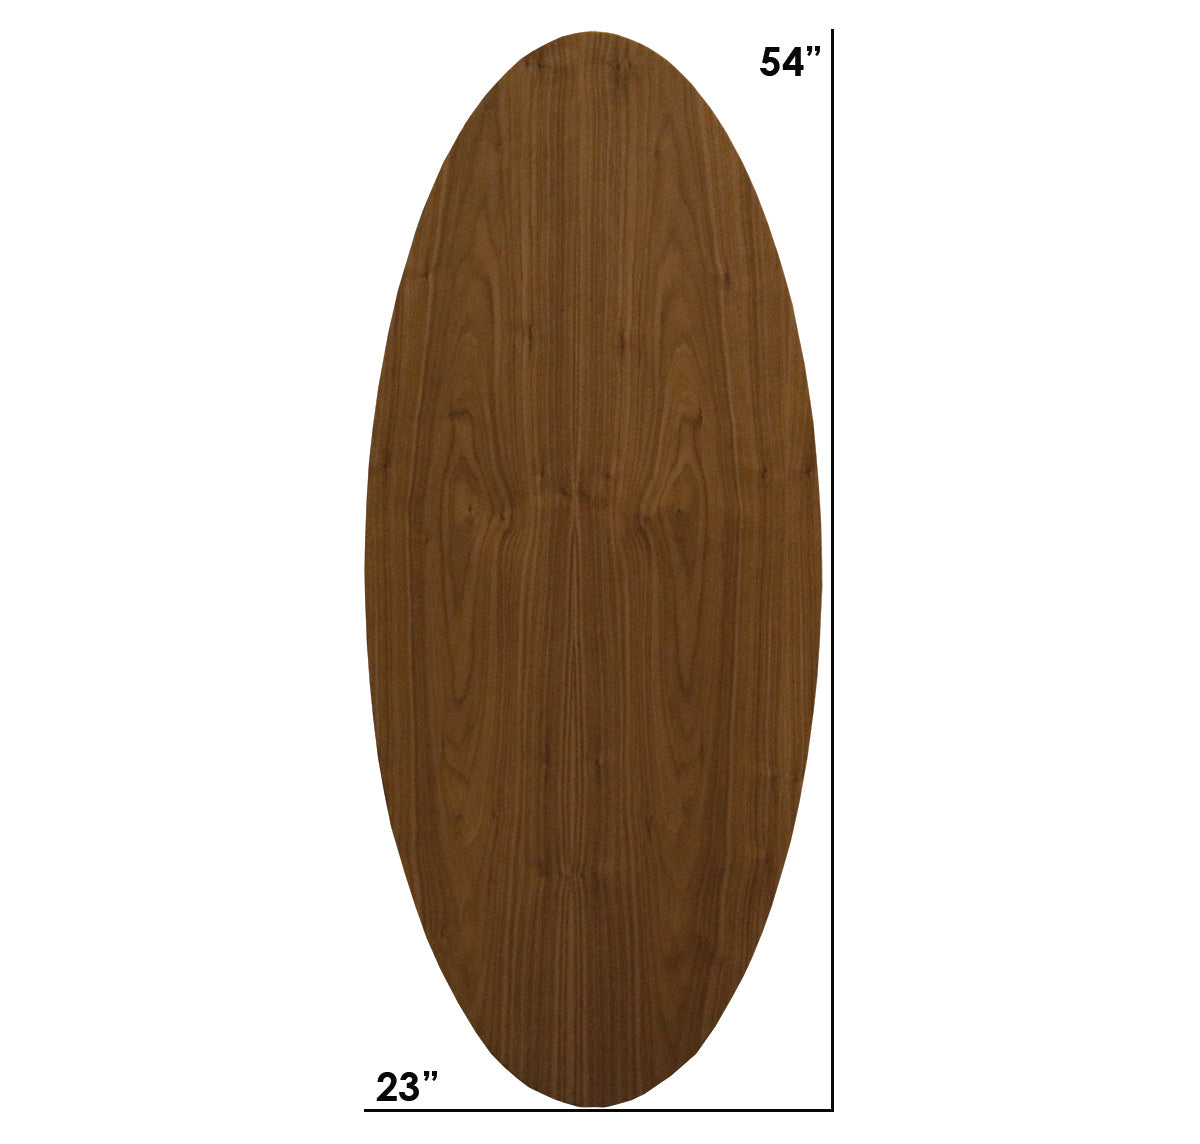 Williams Walnut Extra Small Oval Coffee Table